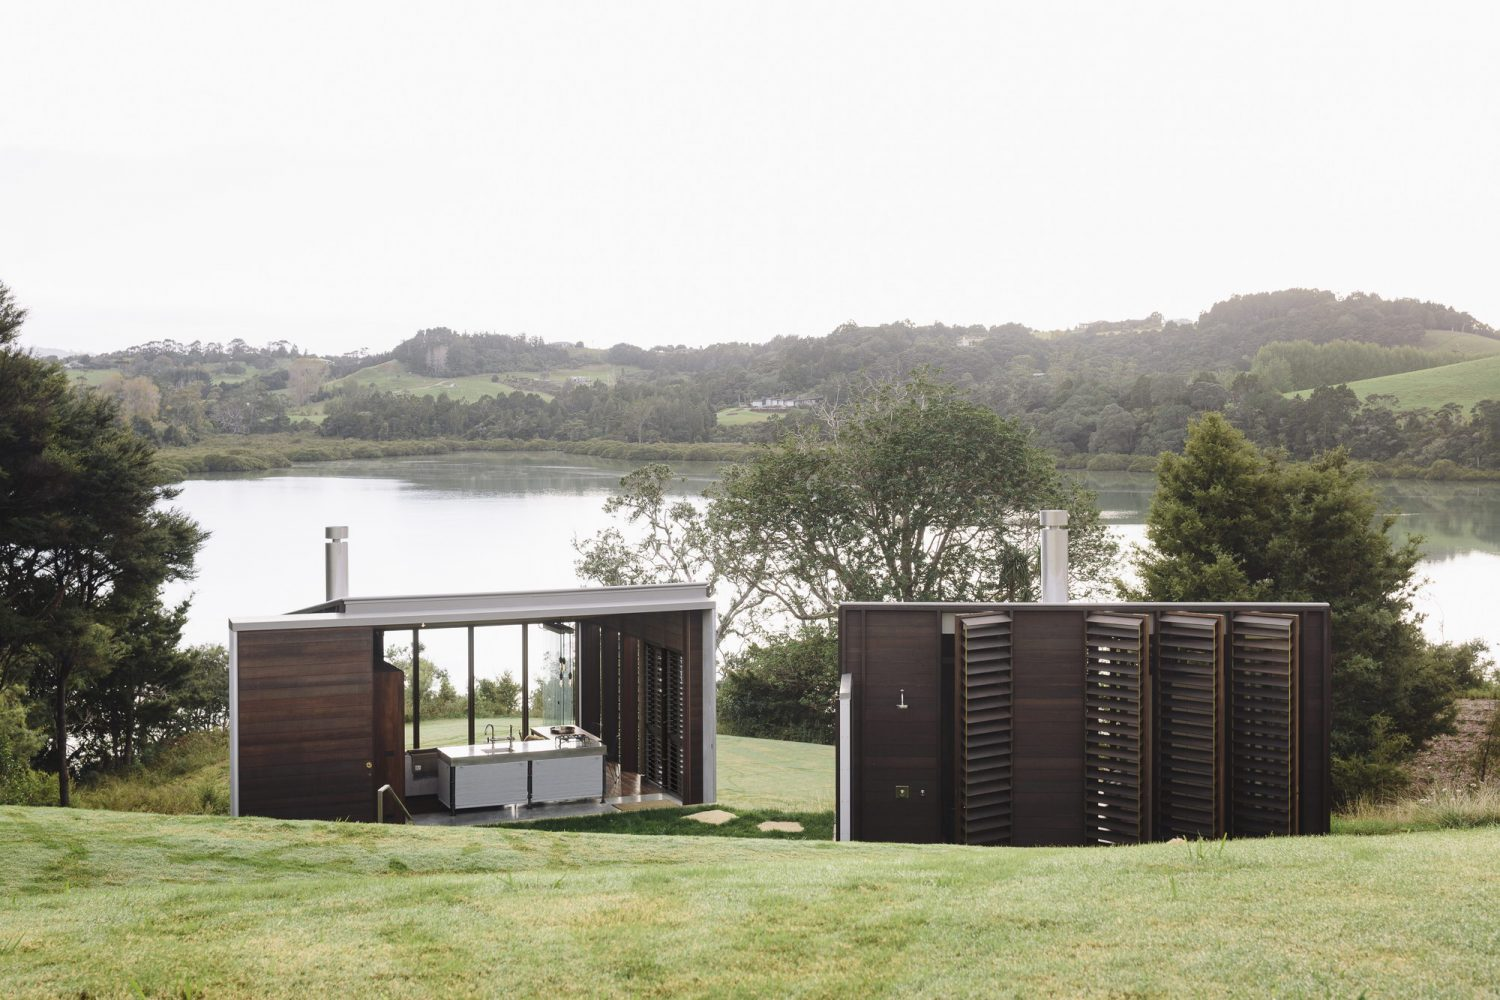 The Camp by Fearon Hay Architects